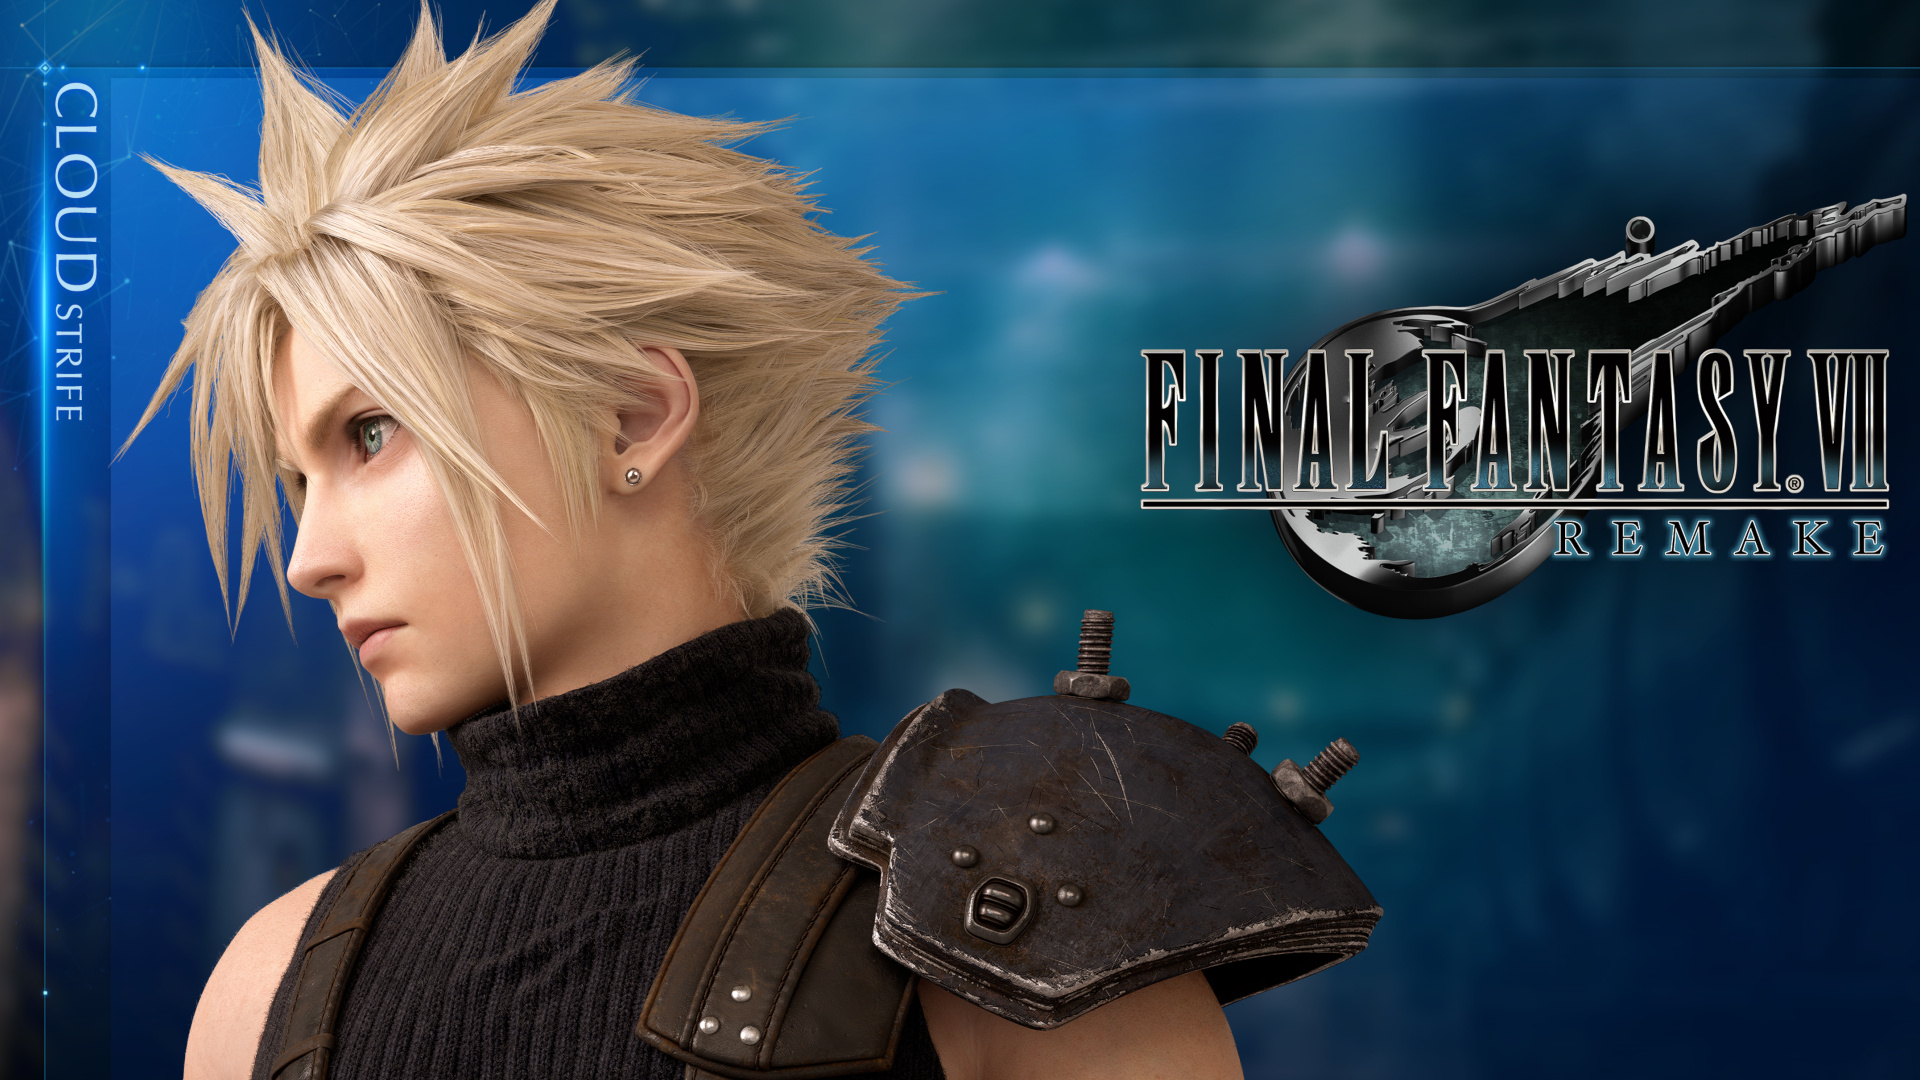 Final Fantasy Vii Remake Pre Load Is Also Anticipated Let S